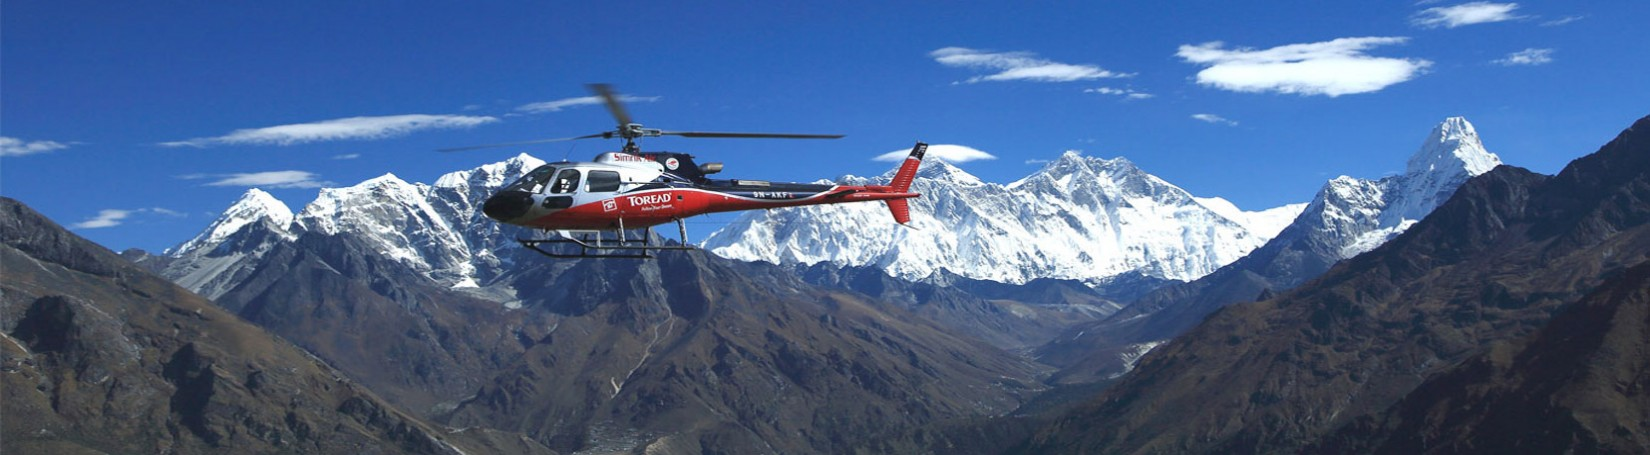 Heli flight to Everest region